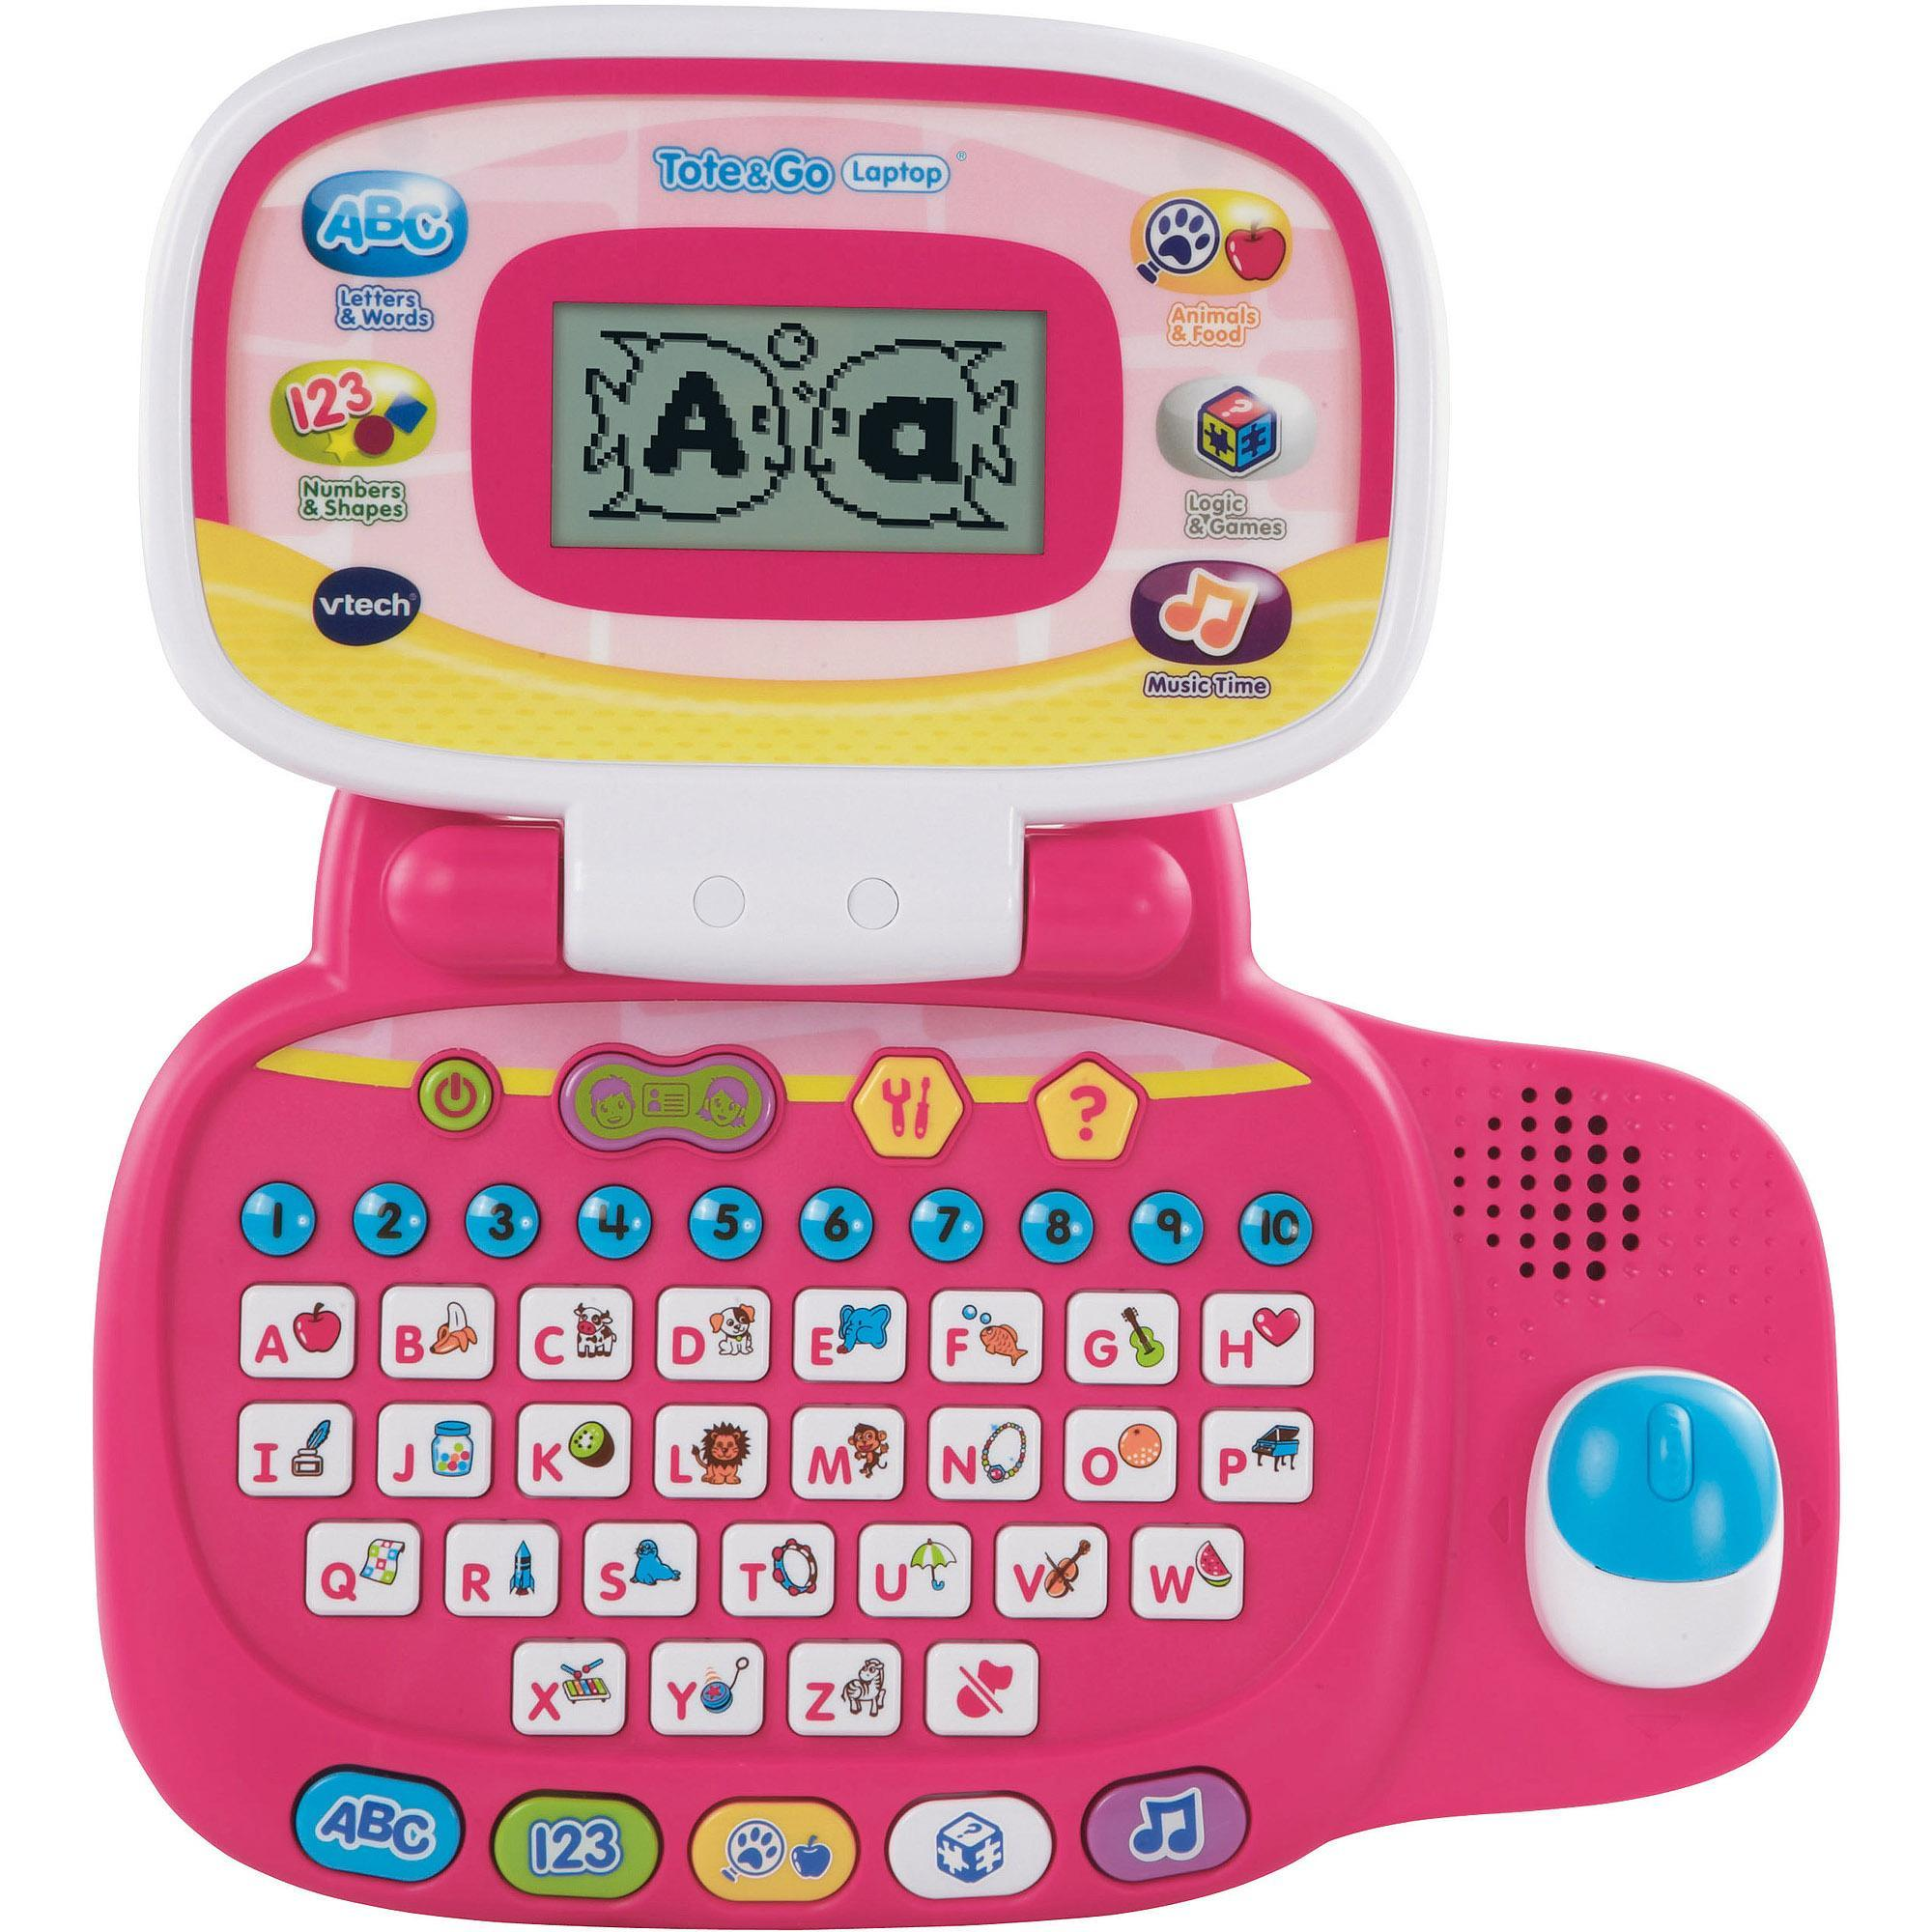 VTech Tote & Go Laptop Just $13.60! Down From $35.00!